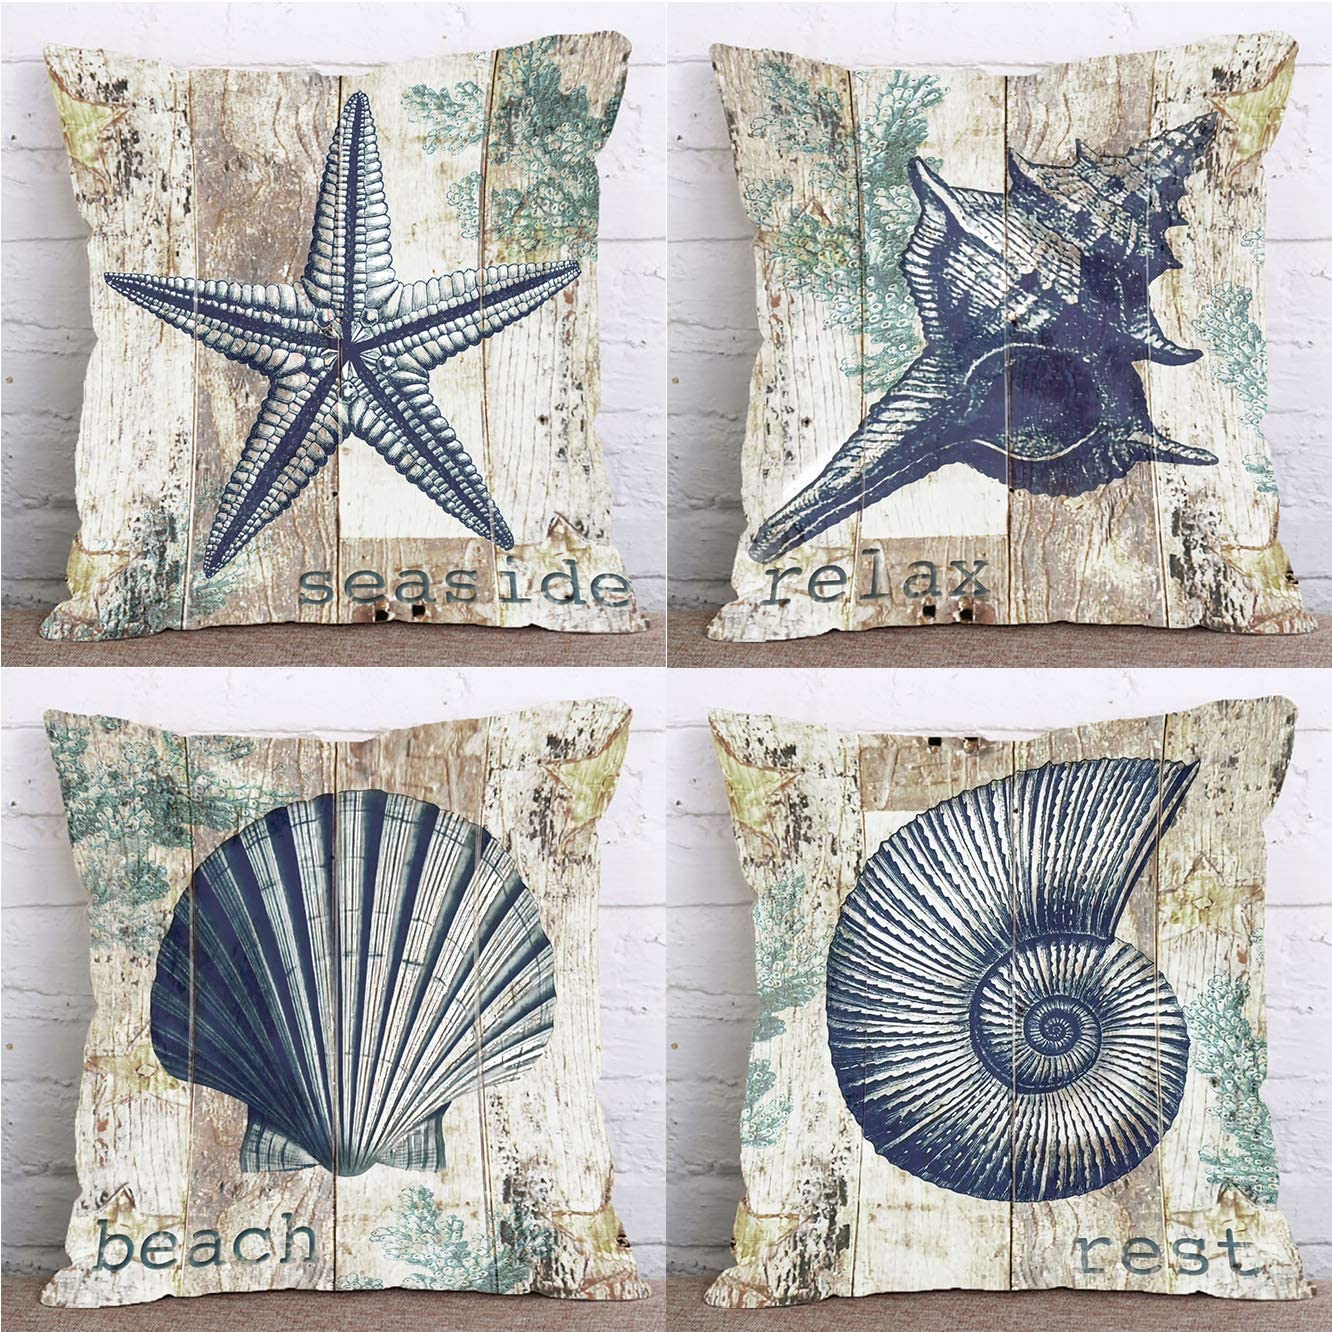 LuckyCow Set of 4 Farmhouse Decorative Throw Pillow Covers Beach Wood Theme Starfish Conch Shell Summer Pillows Cover Holiday Decor Home Car Bedding Cushion Cover Cotton Linen 18x18 Inch